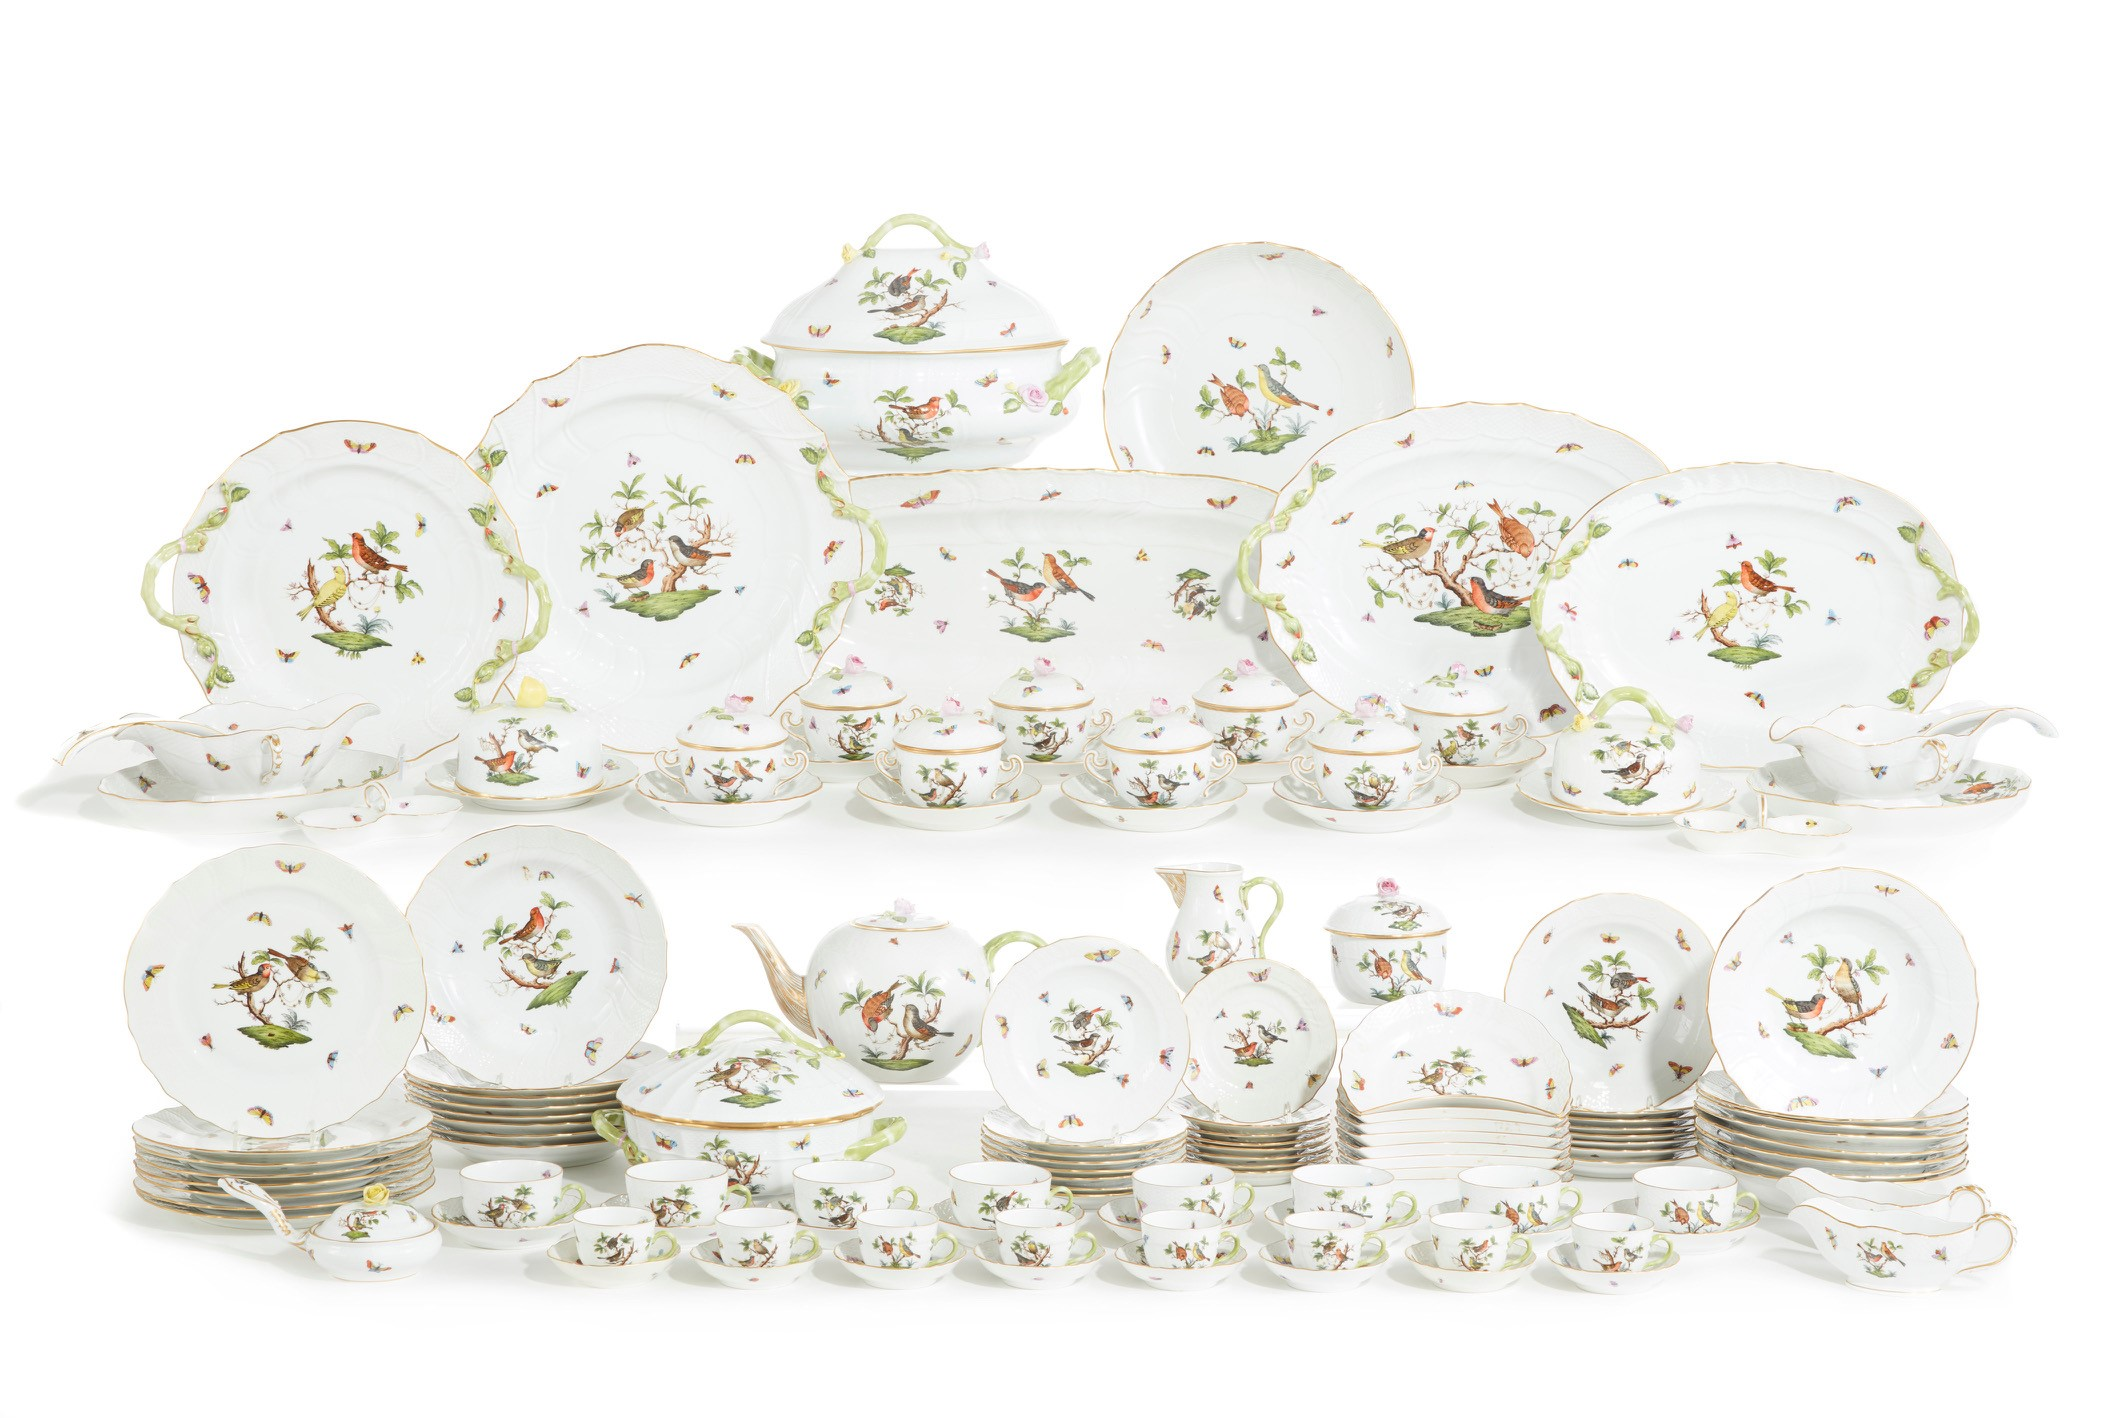 An extensive forty-three lot Herend dinner service in the Rothschild Bird pattern from the collection of Fima Ruchman has estimates ranging from $150-250 to $1,500-2,000.